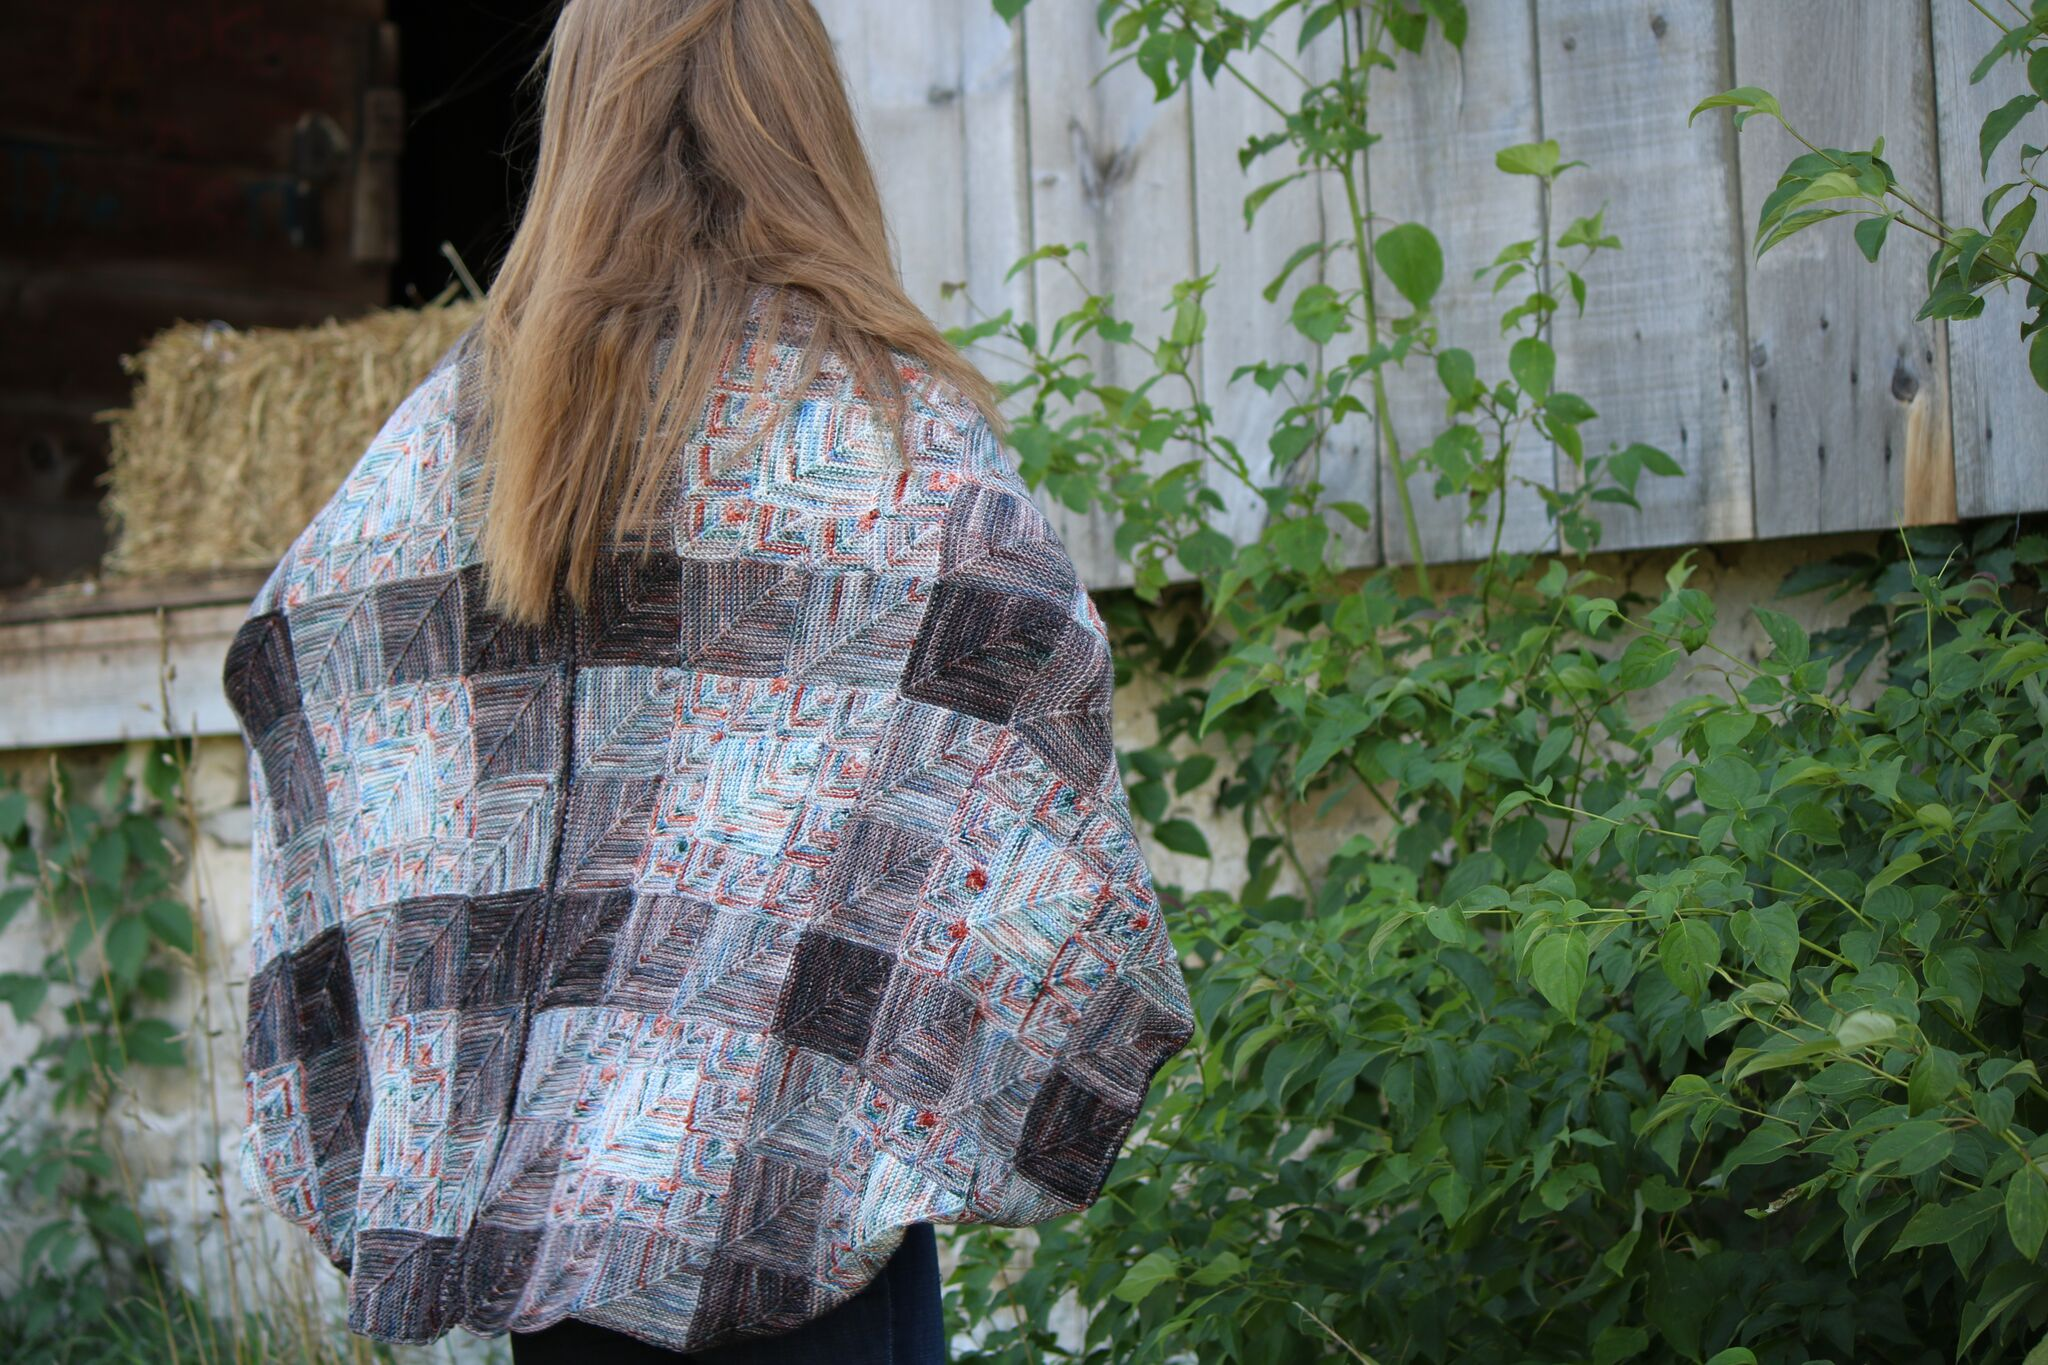 Viking Poncho - Features 3 of the gradient packs. View more in magazine 8.View MoreShop